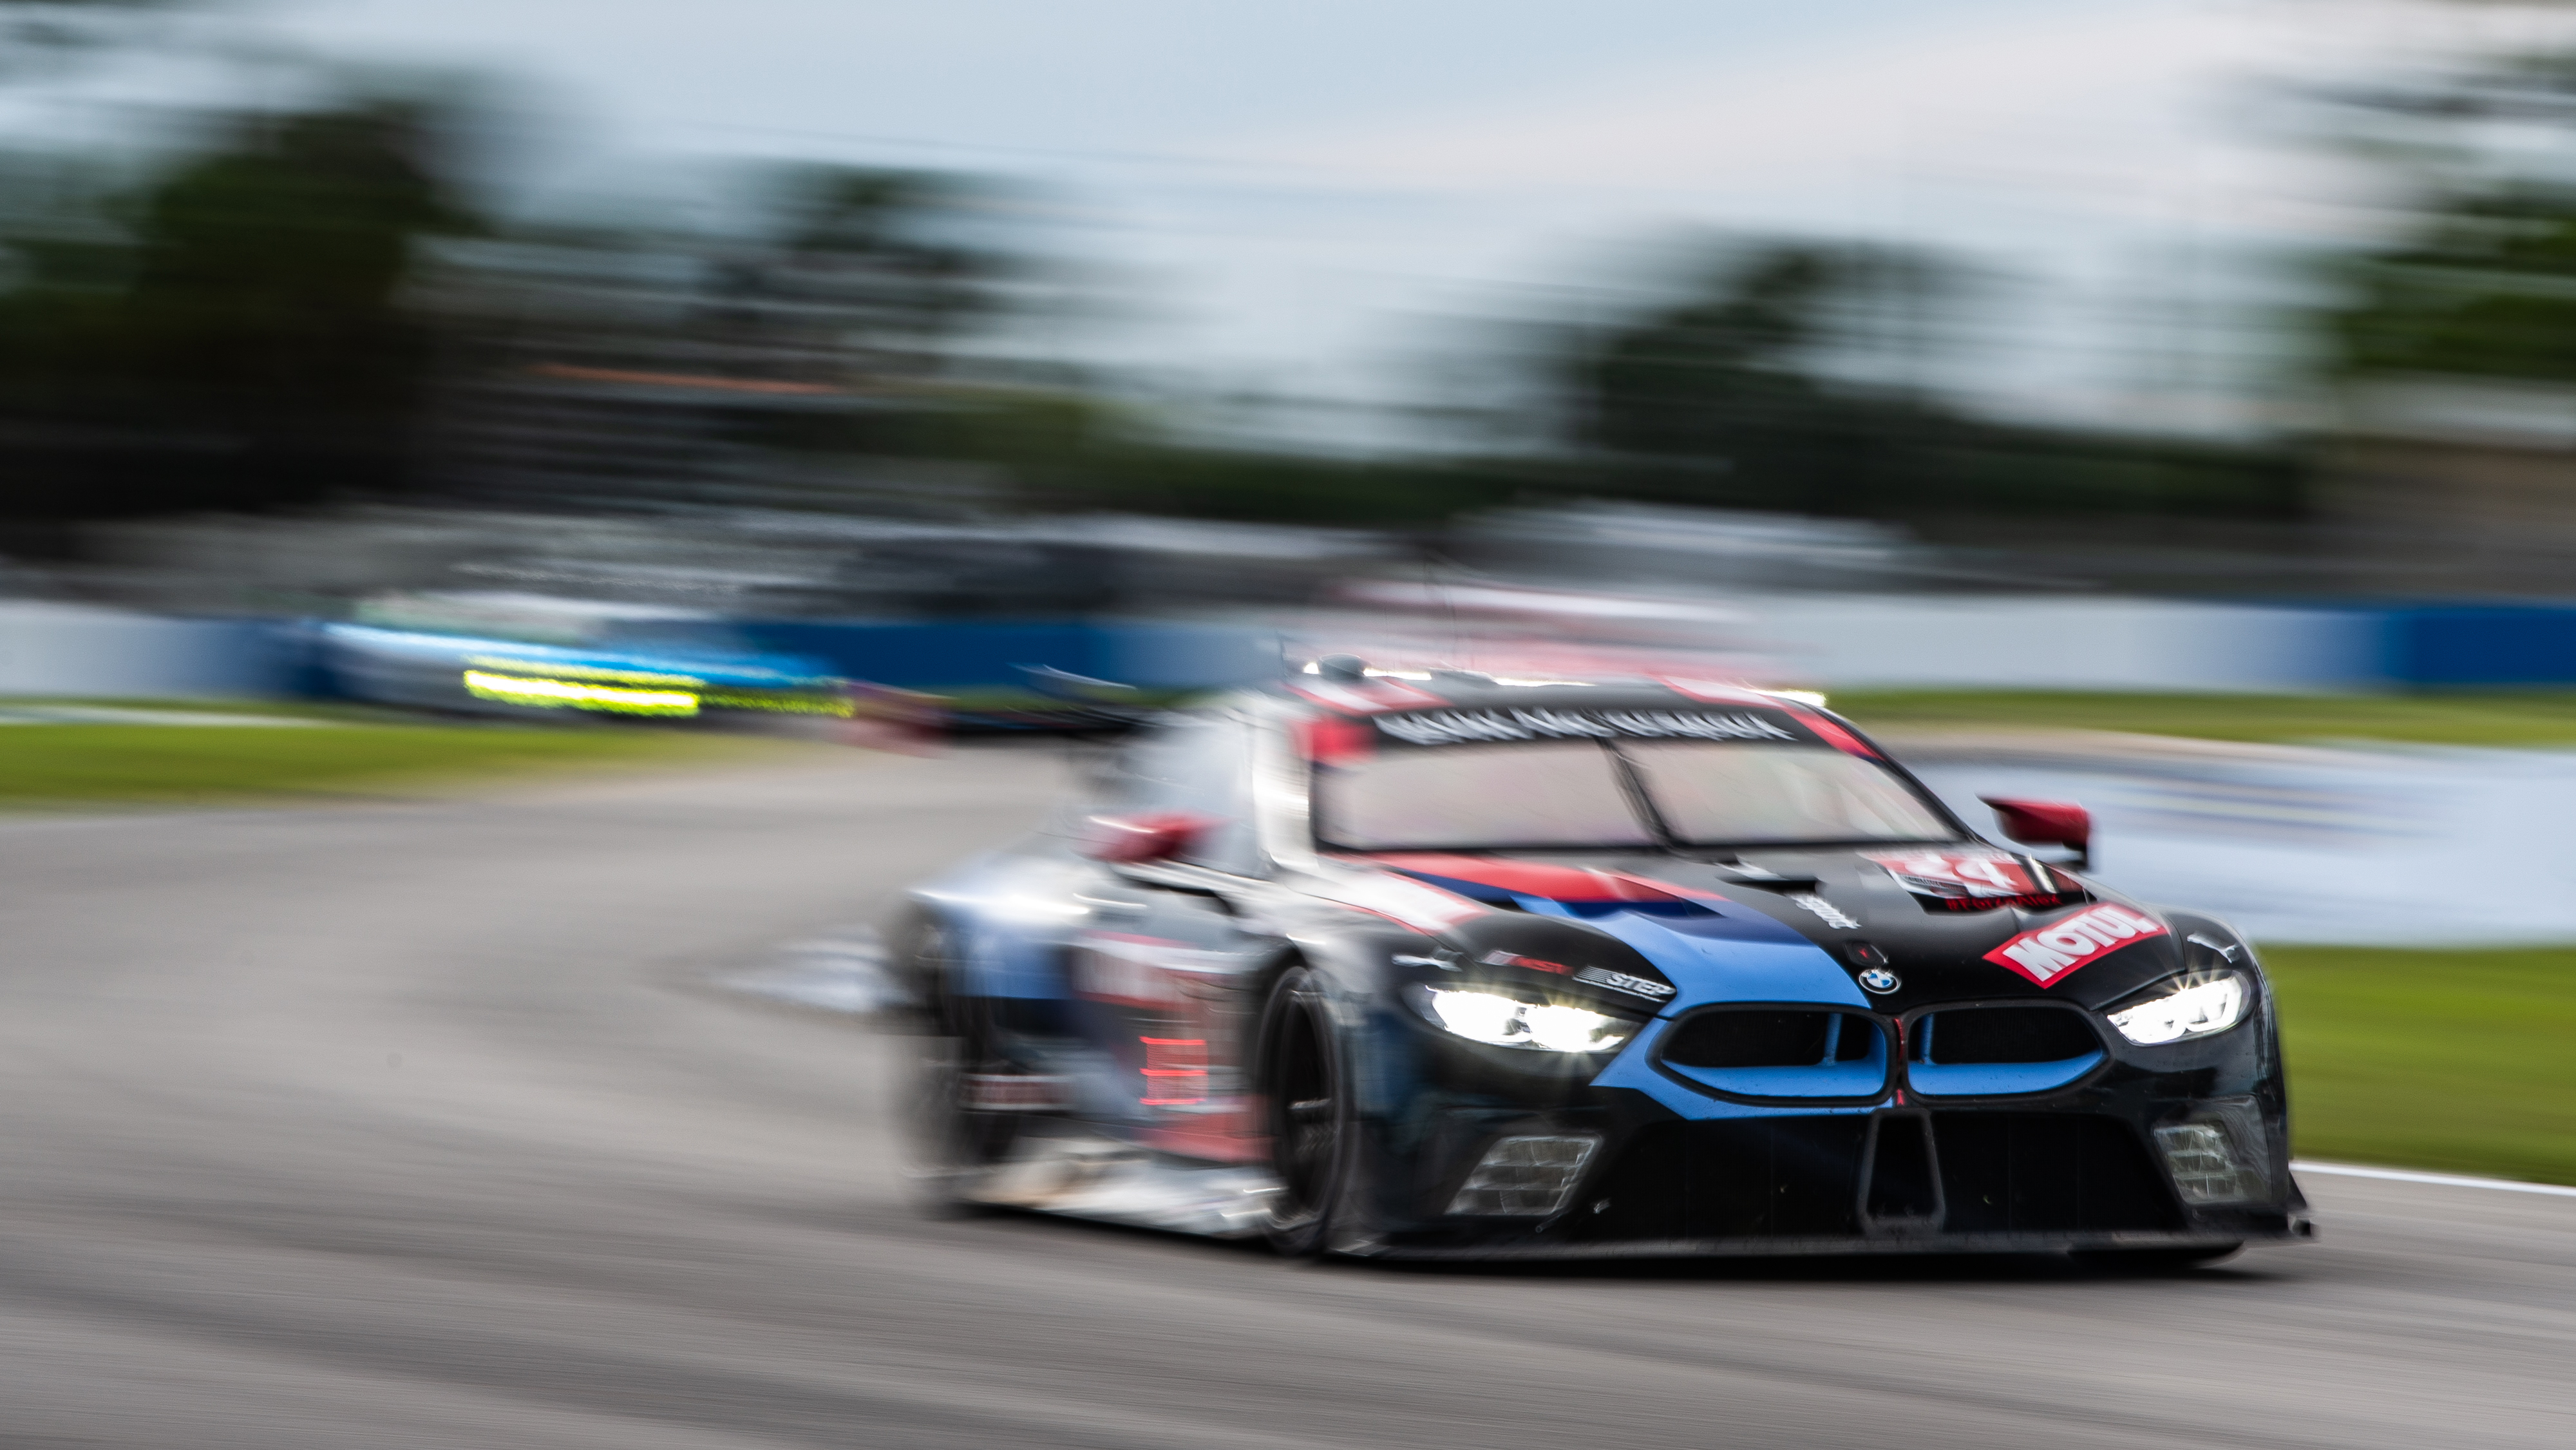 BMW Team RLL Racing To Clinch The Michelin Endurance Cup At The Twelve Hours of Sebring.